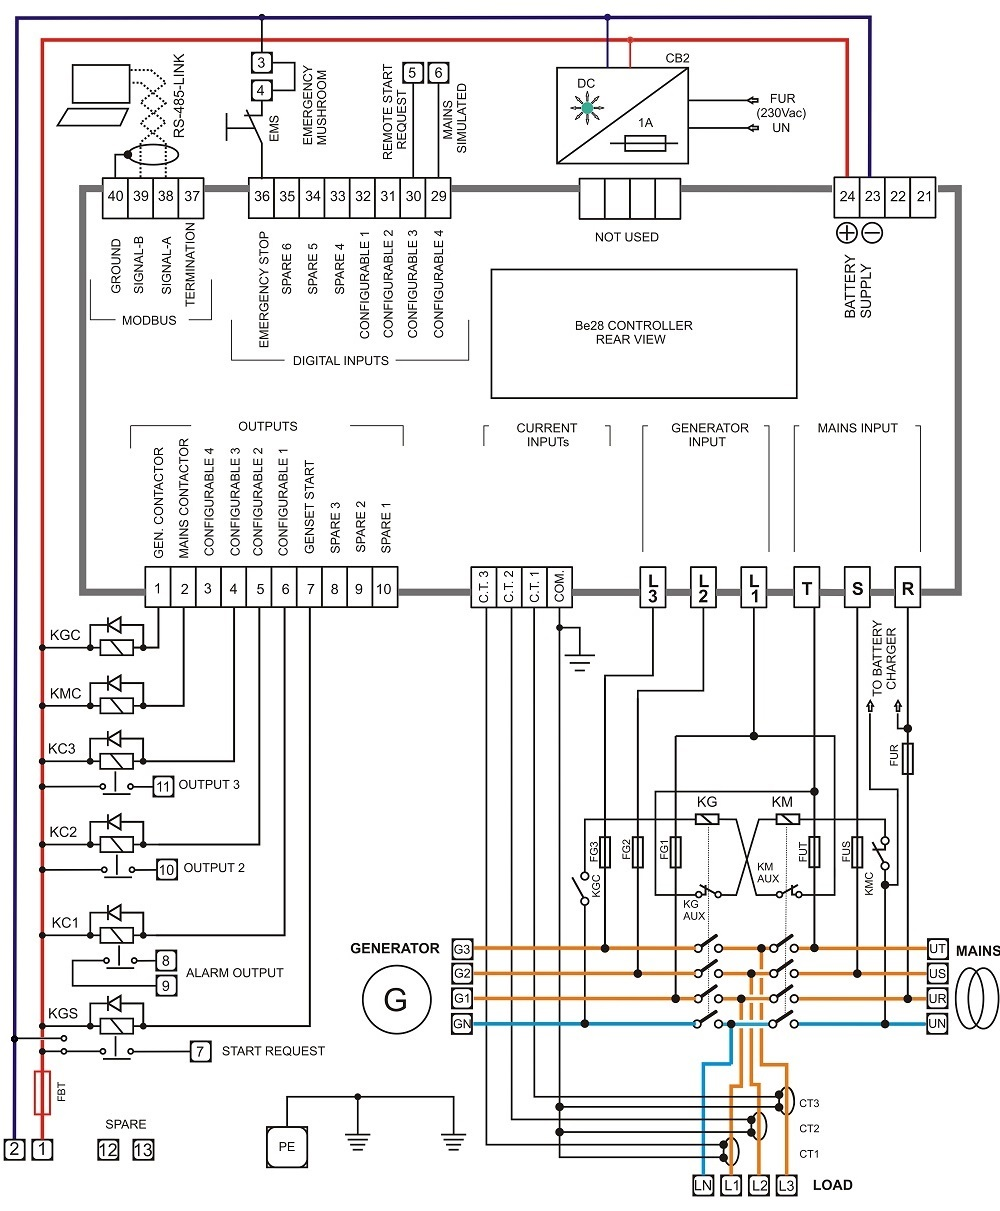 60kVA ATS PANEL WIRING DIAGRAM ats panel wiring diagram automatic changeover switch wiring generator panel wiring diagram at bakdesigns.co